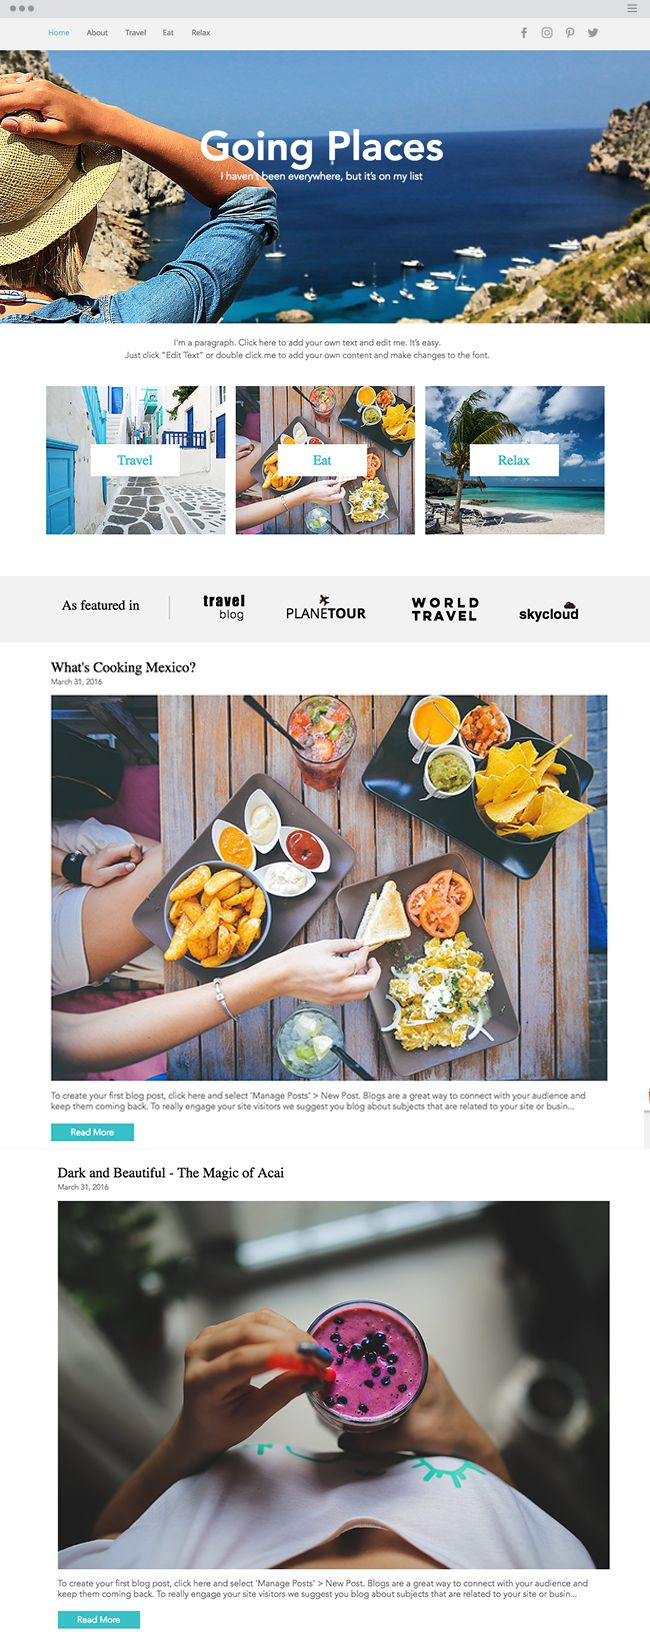 21 best wix templates for a new website or add-on images on ...